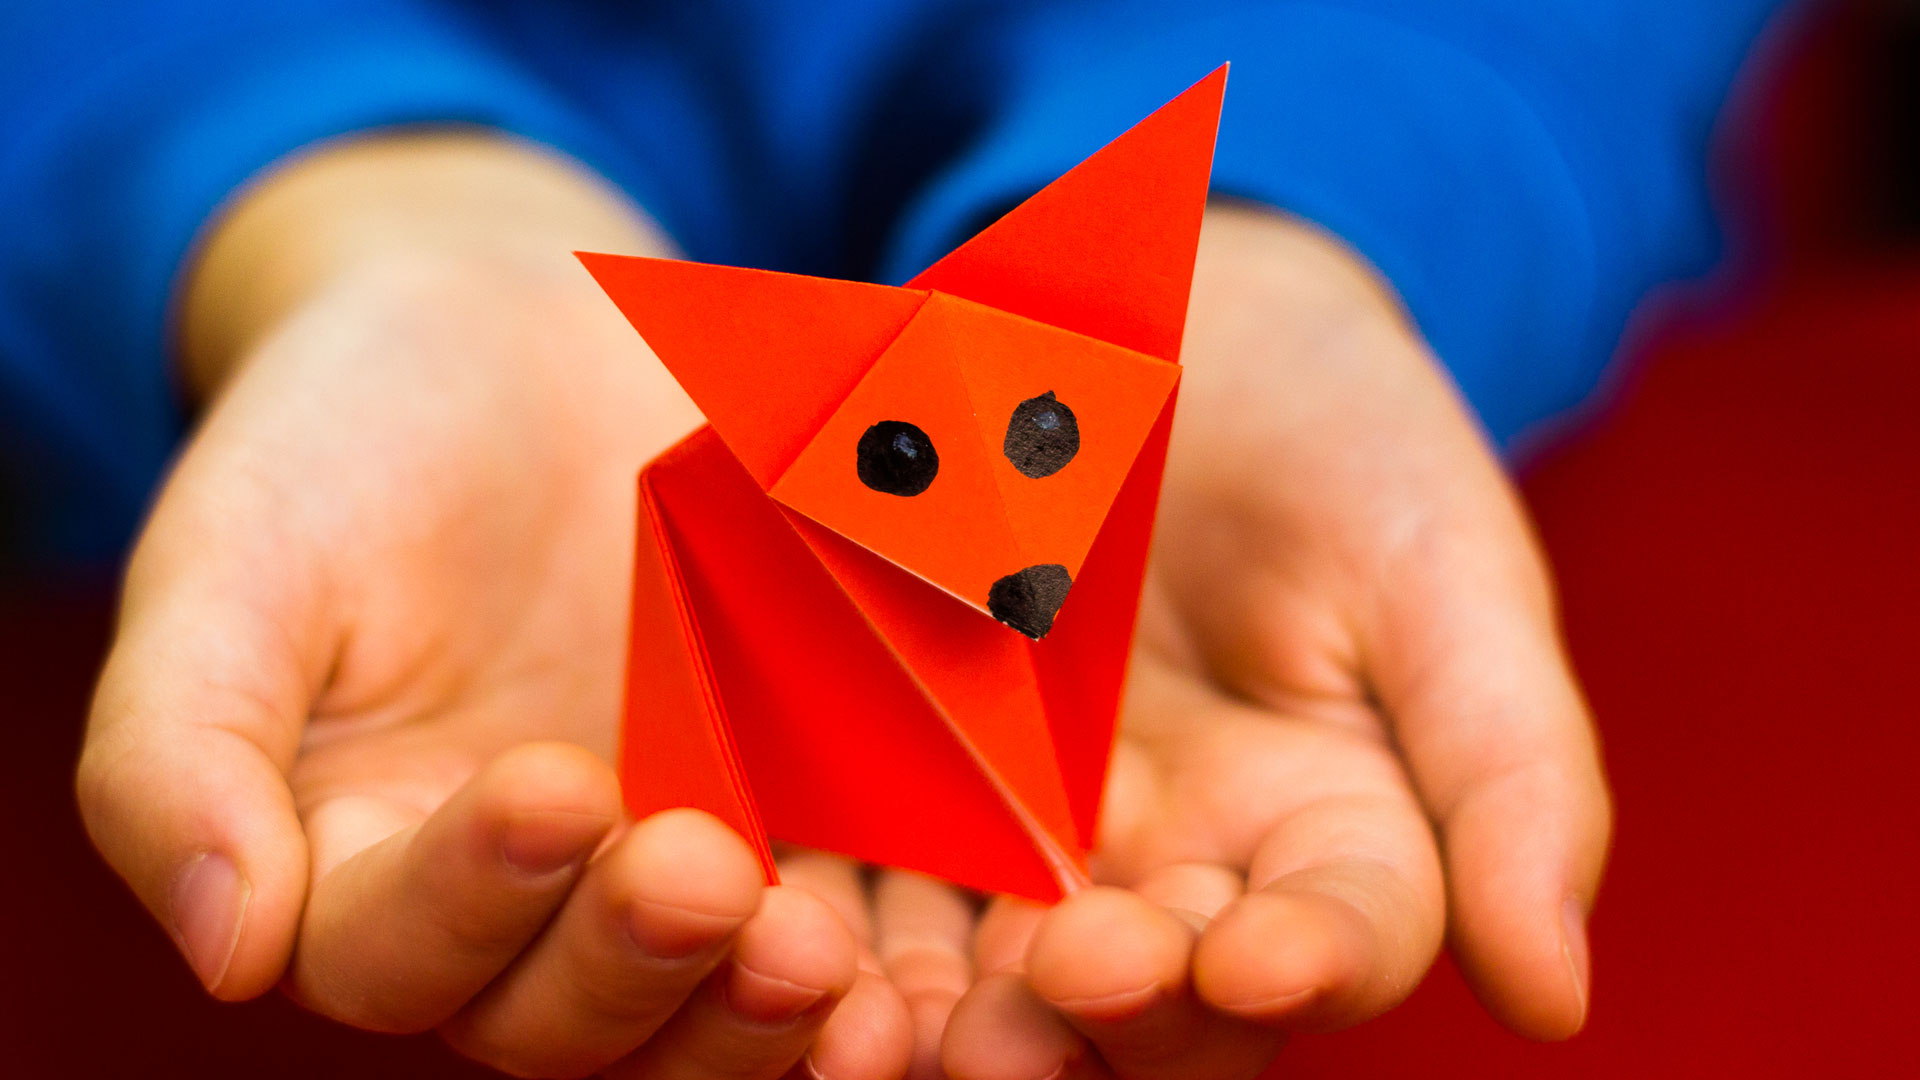 Origami Things For Kids Origami For Kids Archives Art For Kids Hub